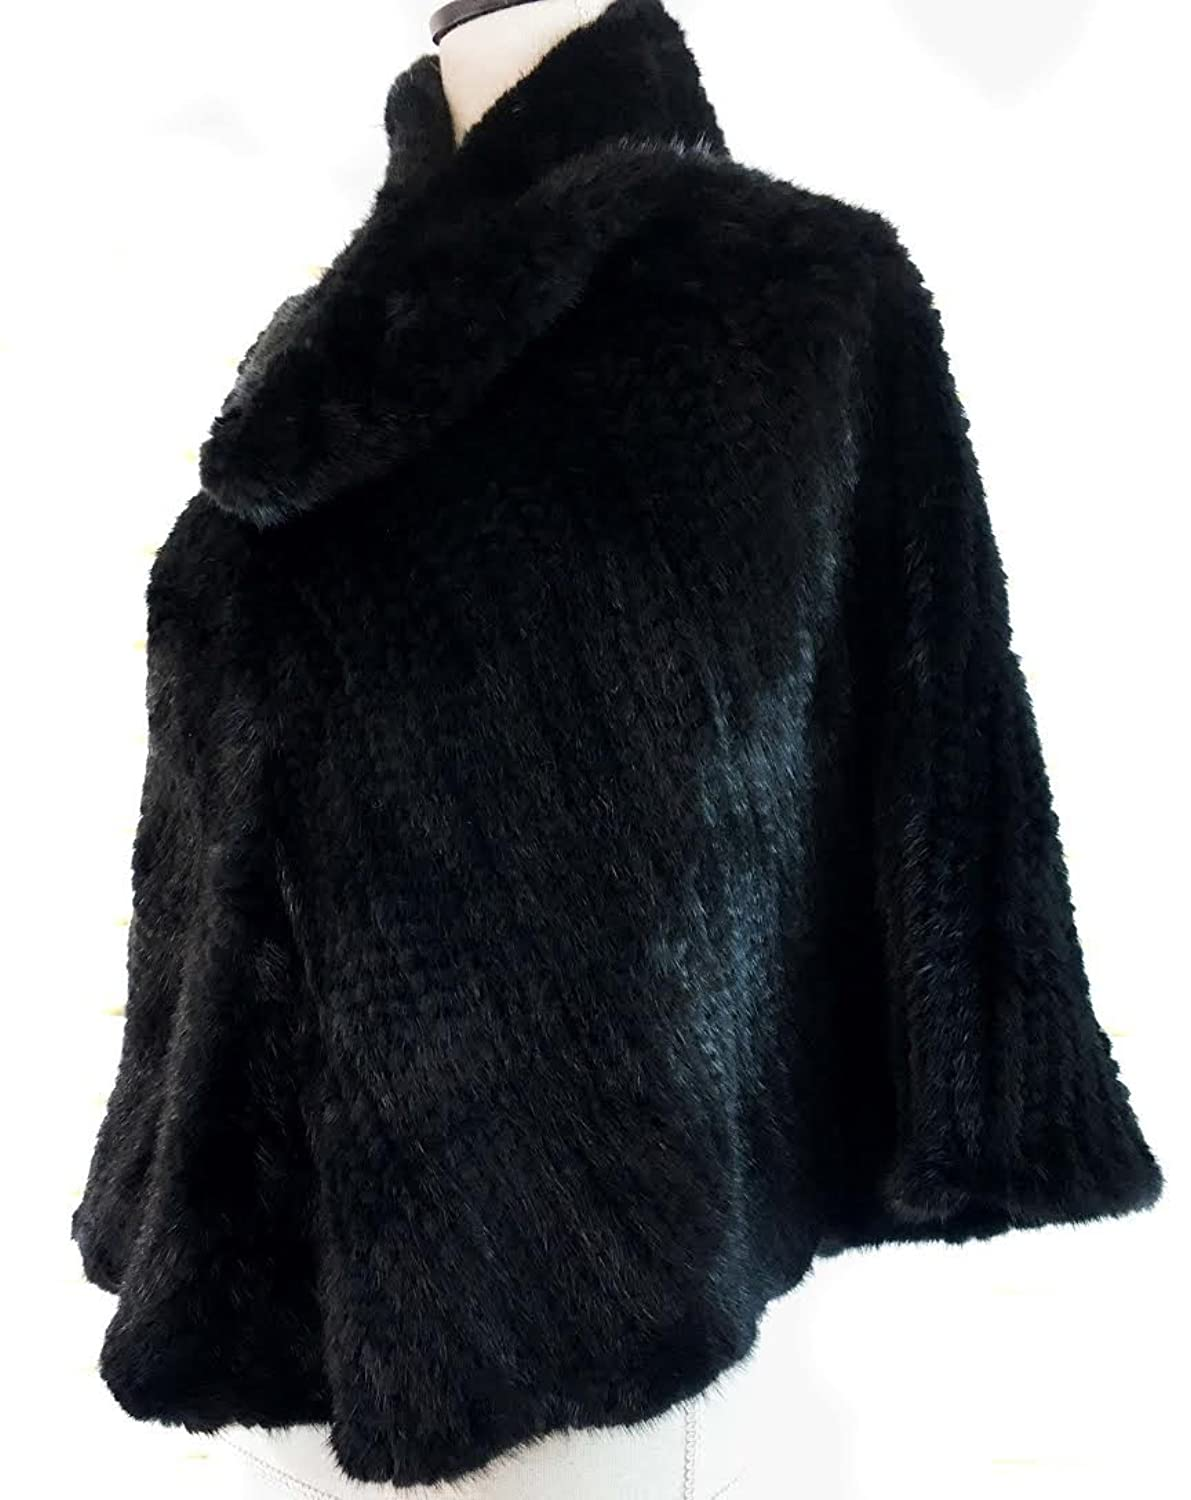 11a2b6a7 Made from 100% Dyed Mink Fur - Dry clean Only Incredibly Soft Mink Fur  Poncho one size fits most. Perfect cold weather fashion accessory to keep  you warm ...